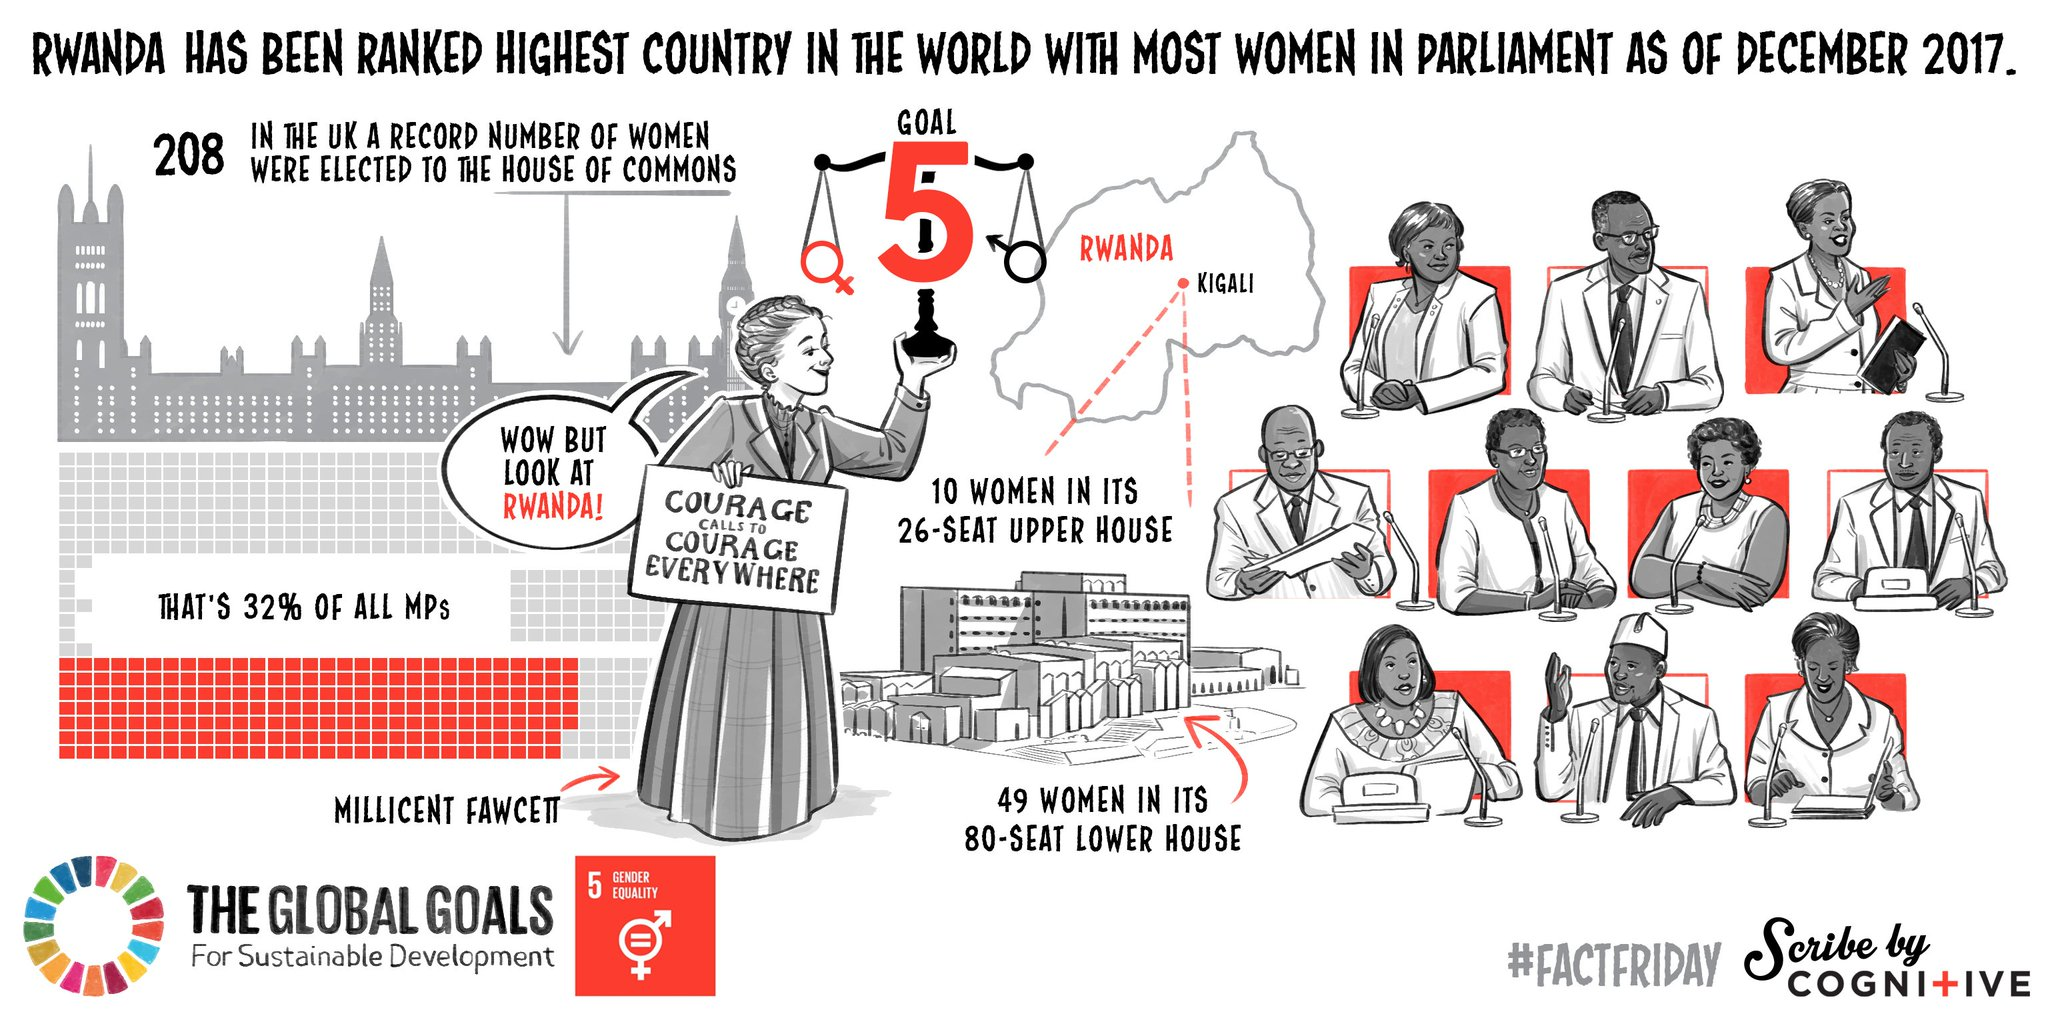 Featuring Millicent Fawcett holding up Goal 5: Gender Equality, the FactFriday image for 23 Feb 2018 received the highest reach of any image on Instagram in the campaign so far!